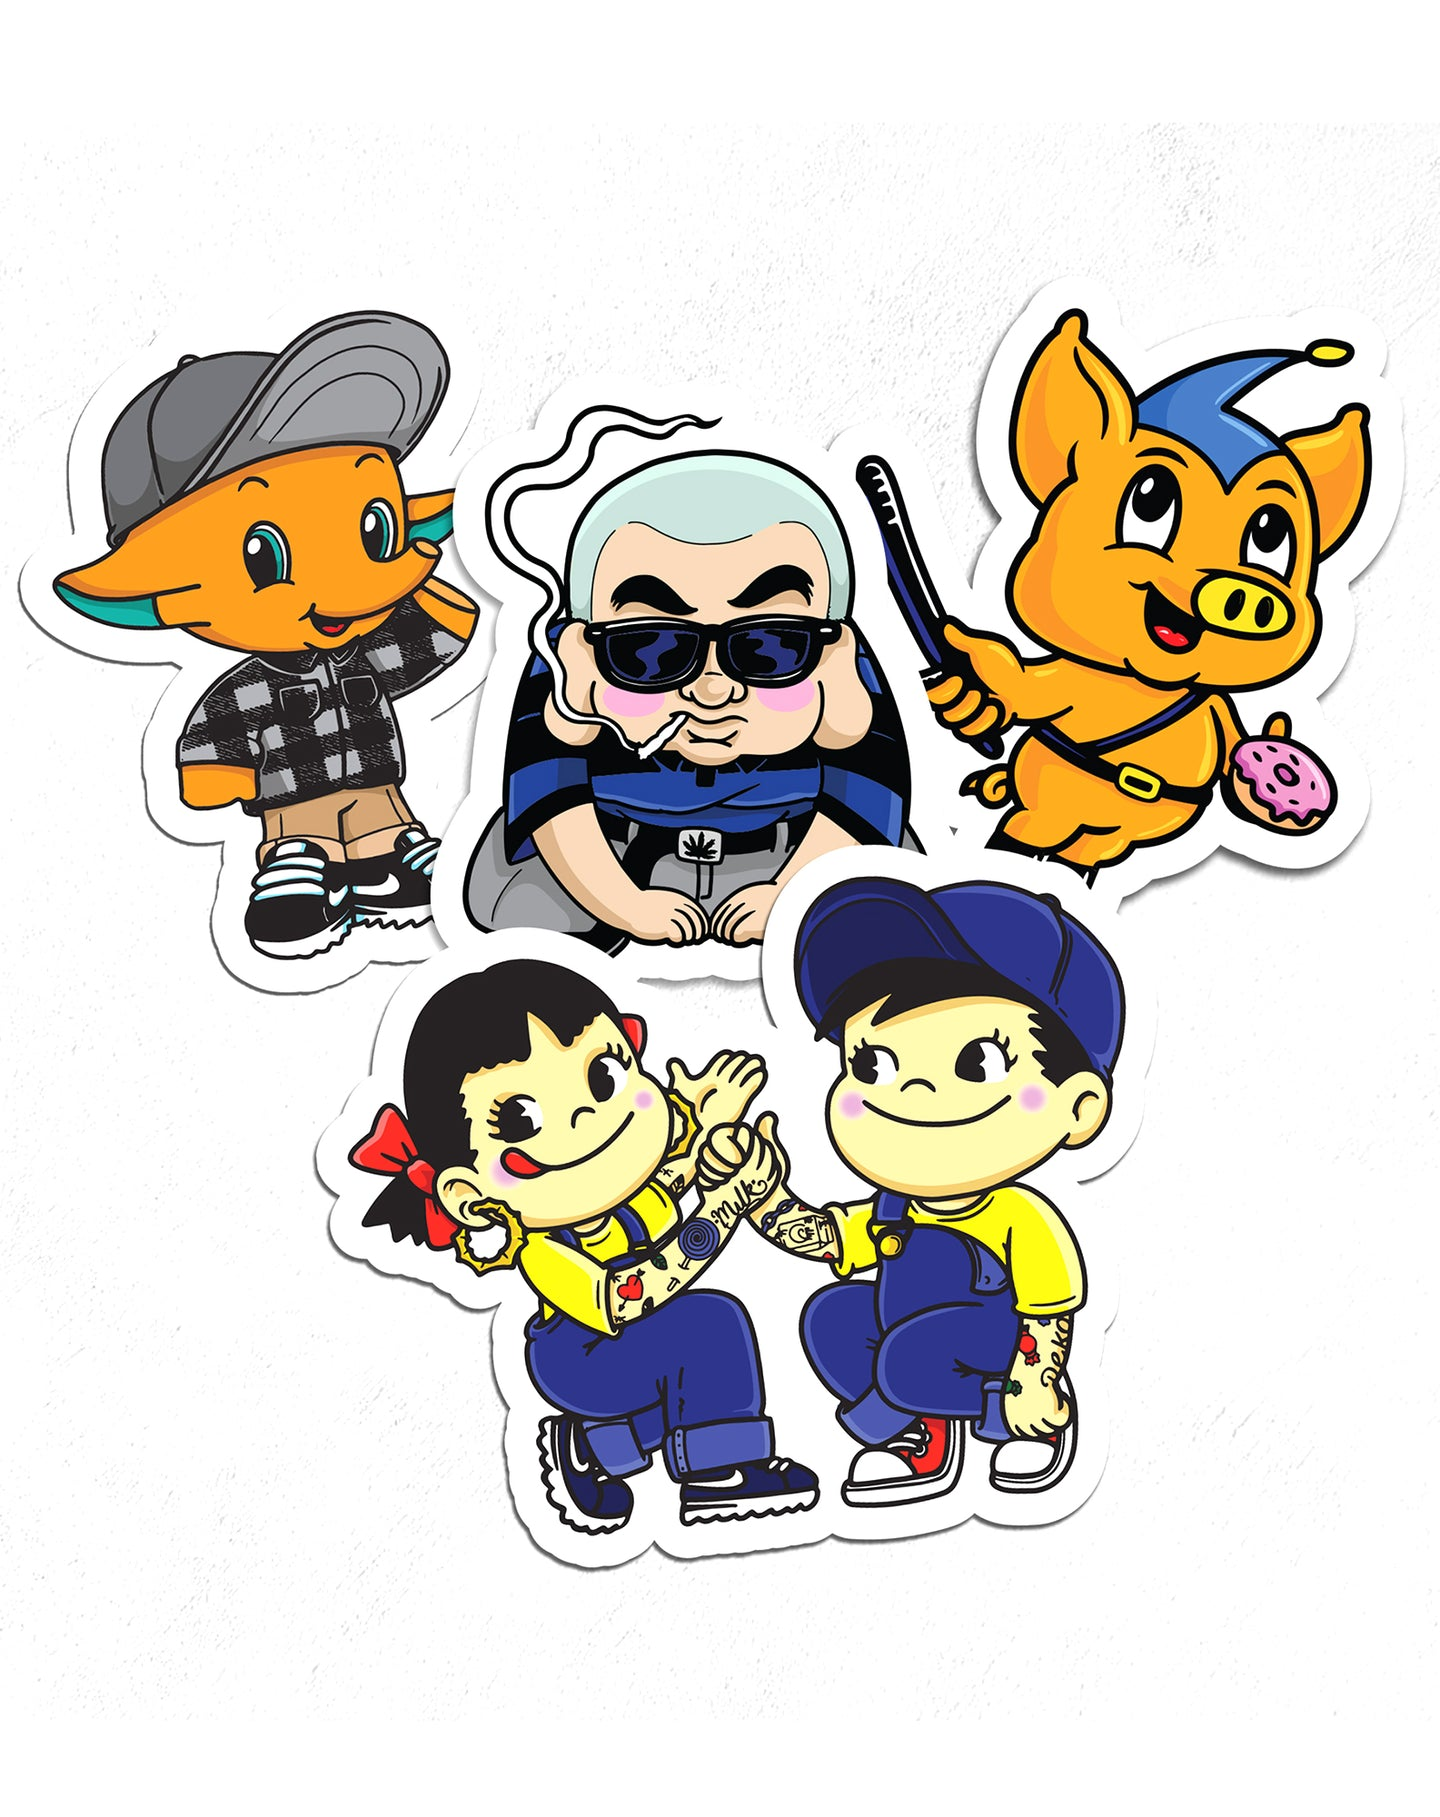 Sticker pack (spring 2020)